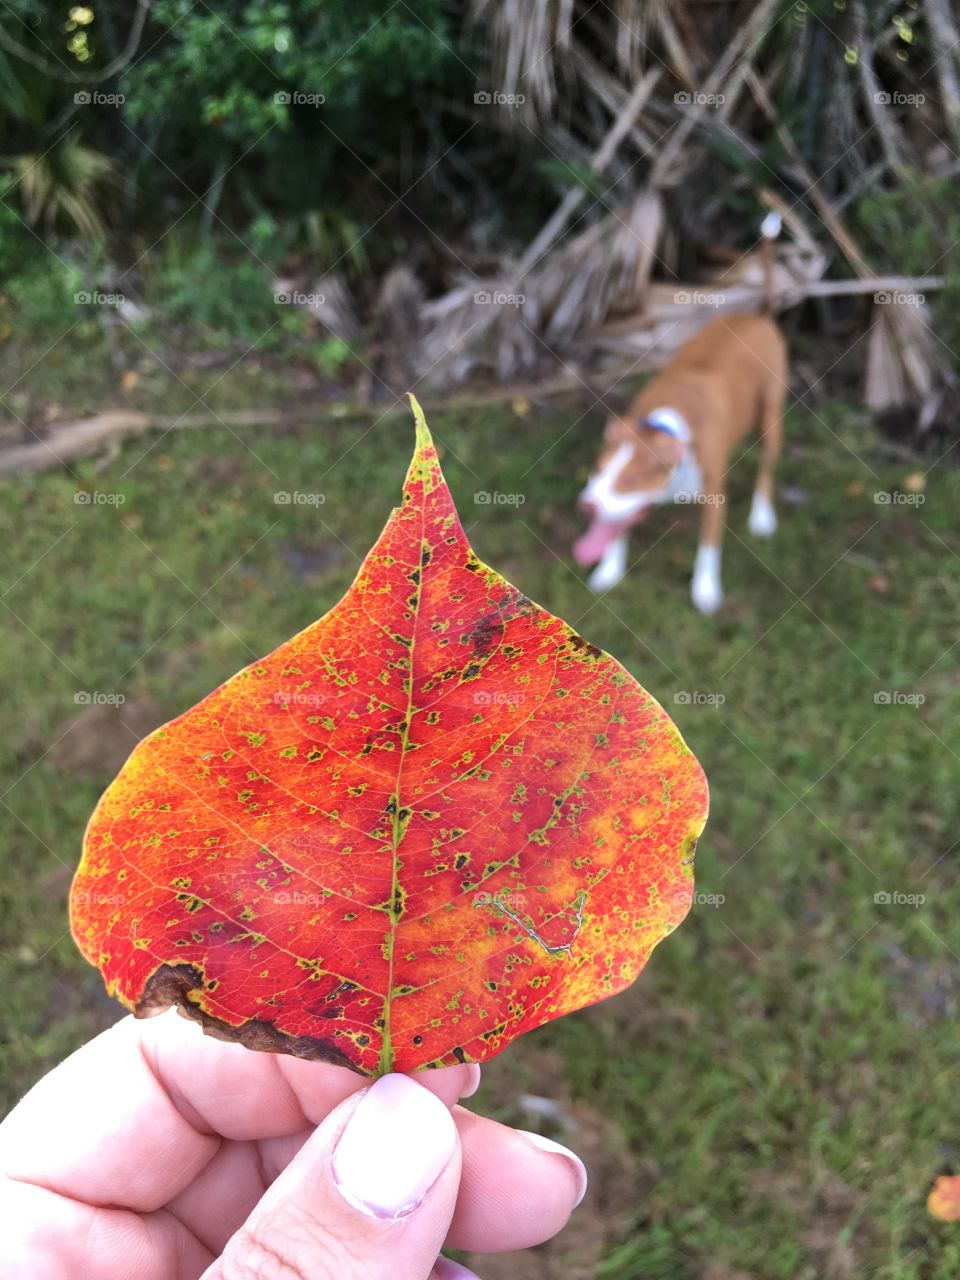 Beautiful red leaf with a pitbull in the background